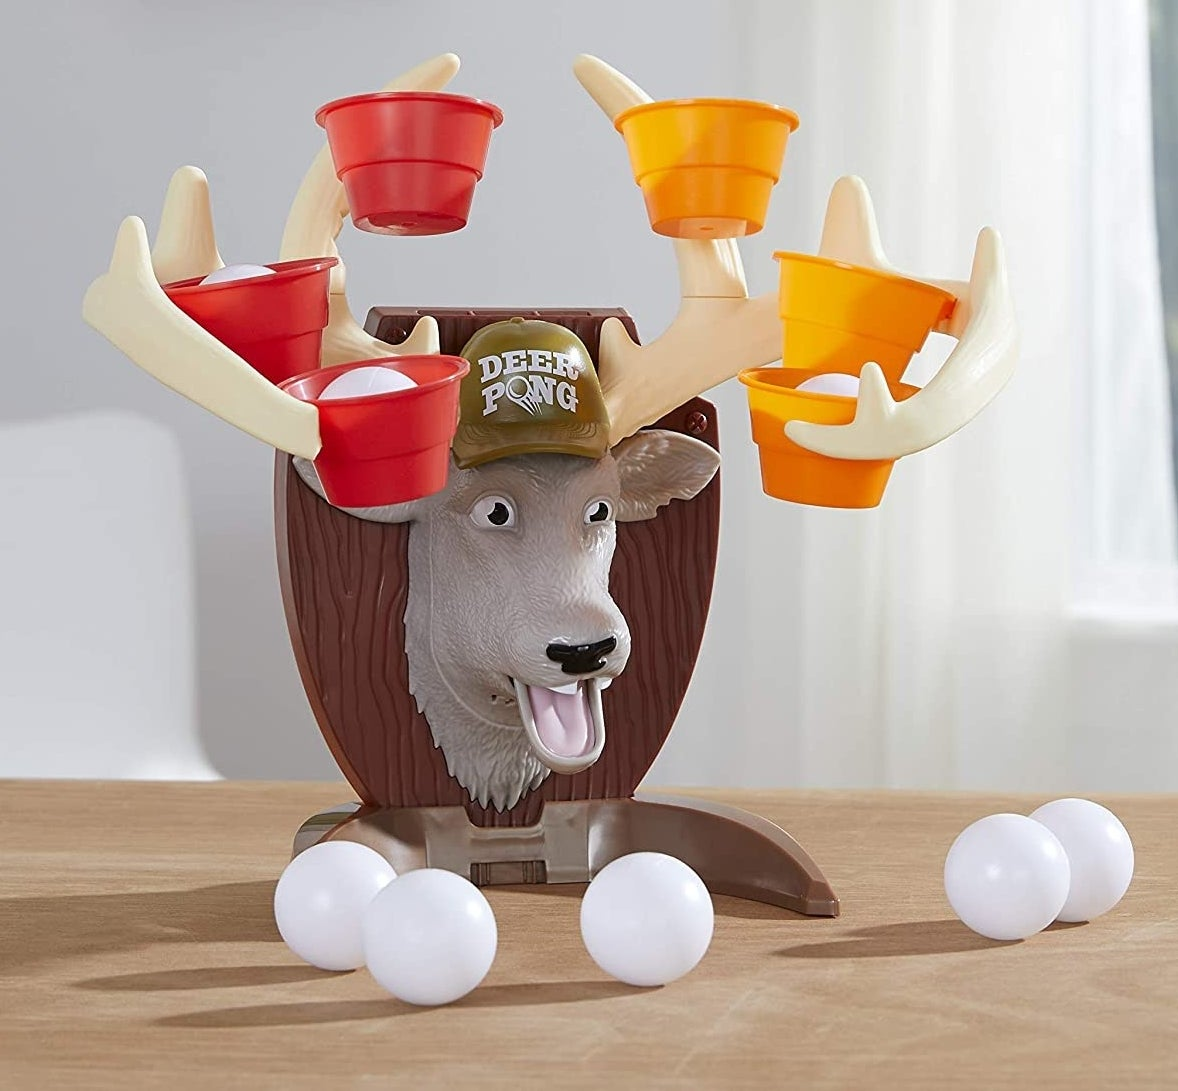 A plastic deer head with colorful cups on the antlers and white ping pong balls